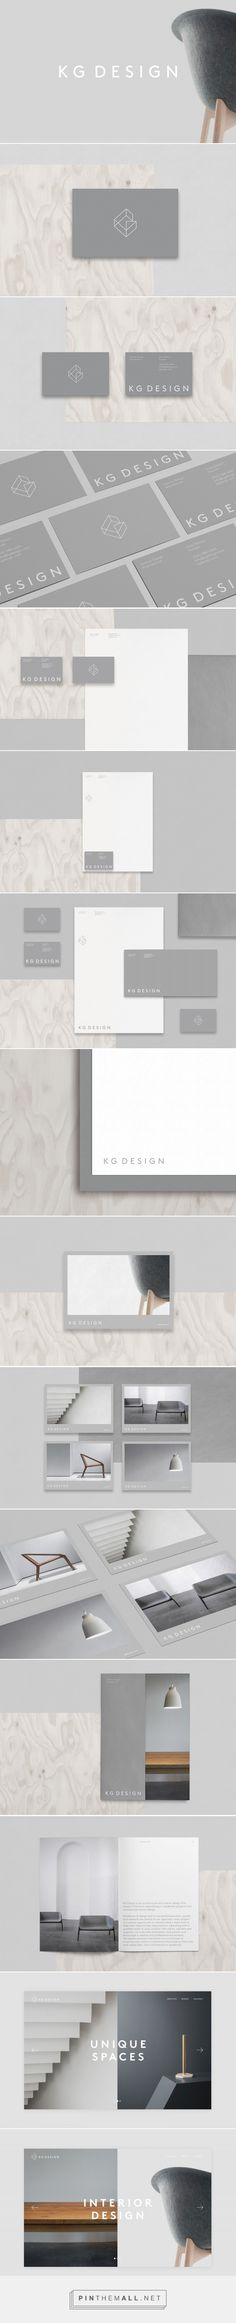 KG Design Interior Design and Arquitecture Firm Branding by Sonia Castillo Web Design Agency, Brand Identity Design, Graphic Design Branding, Corporate Design, Business Branding, Branding Agency, Business Card Design, Logo Branding, Interior Logo